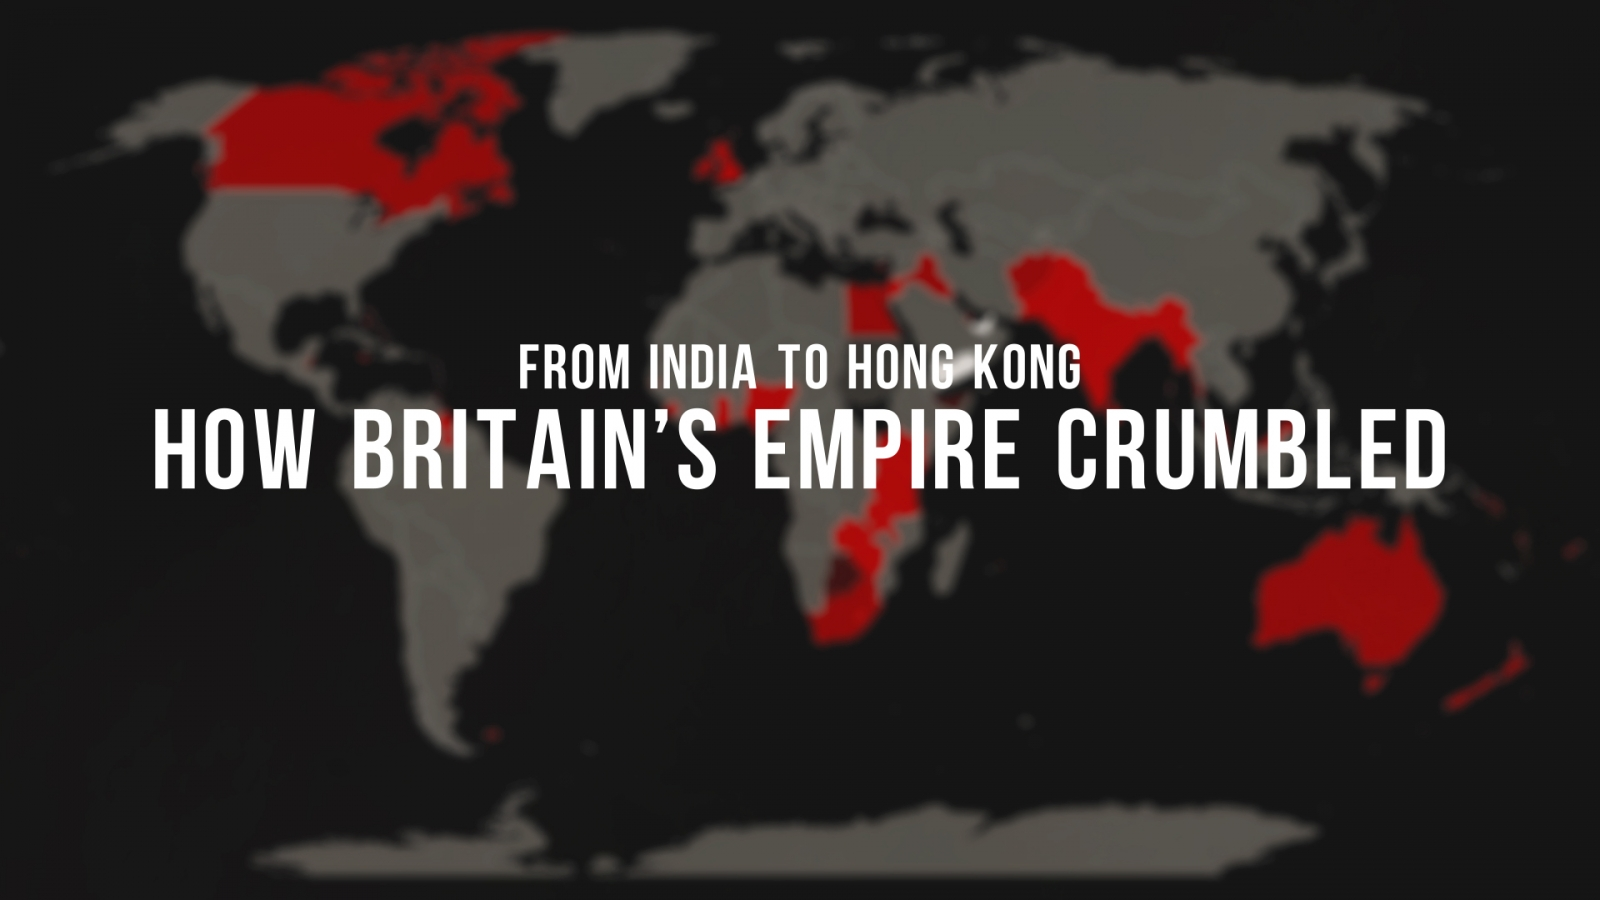 from-india-to-hong-kong-how-britains-empire-crumbled